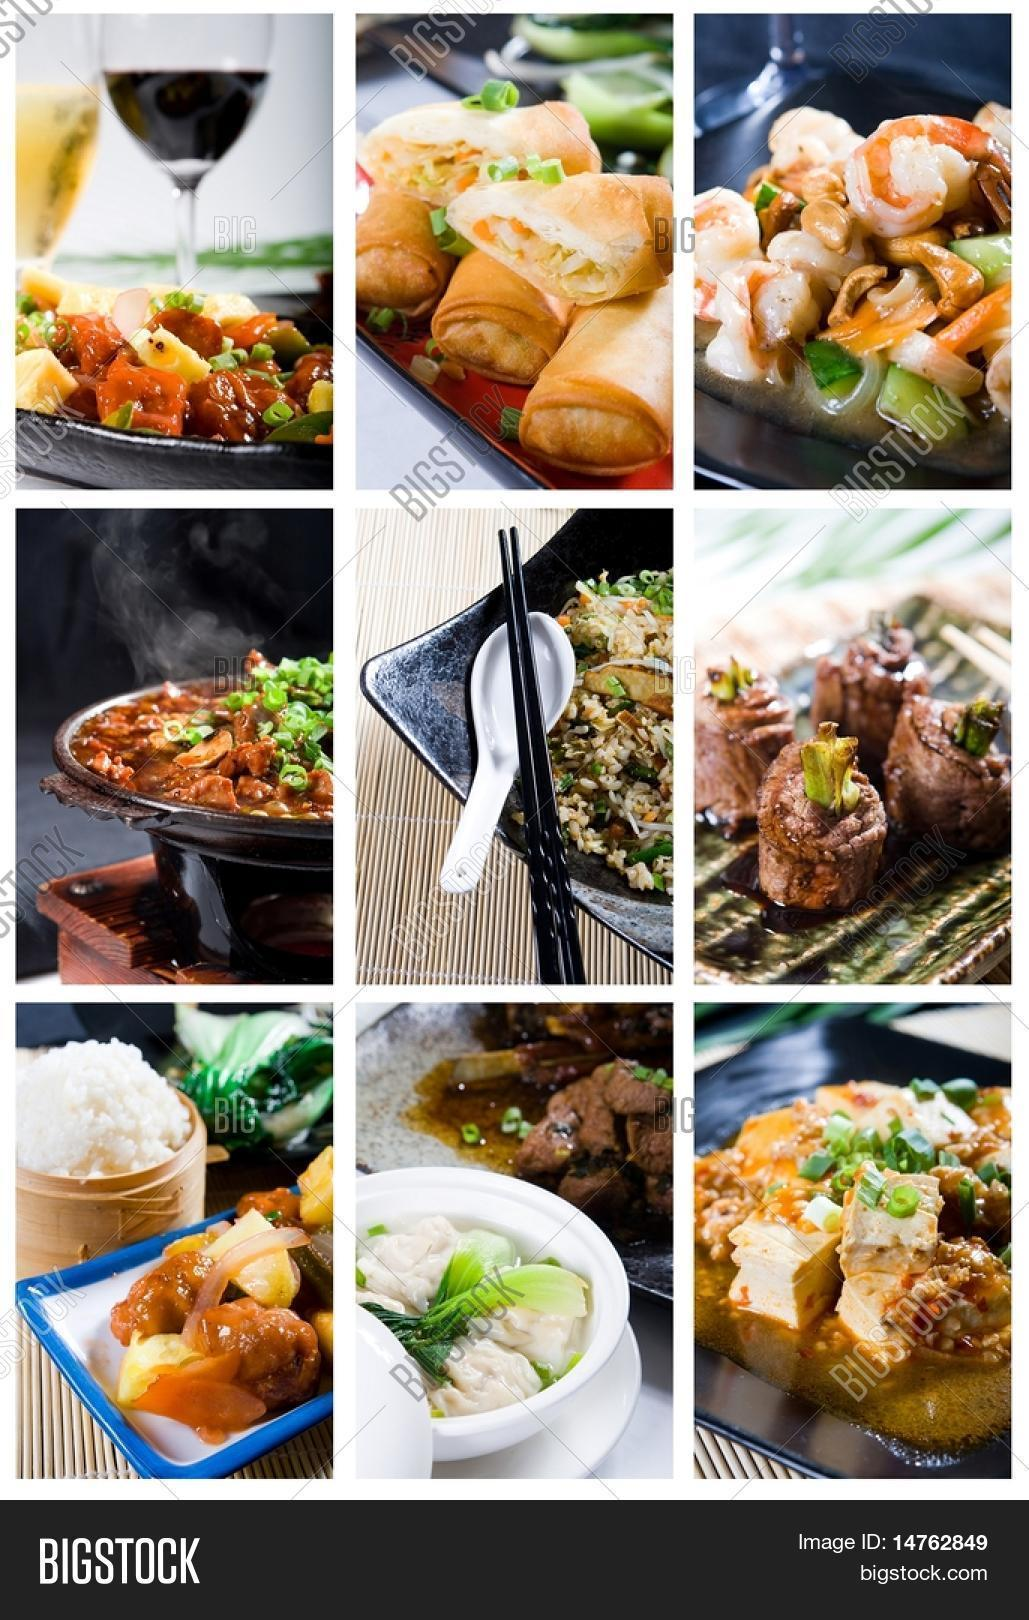 Chinese food collage image photo bigstock for Ancient chinese cuisine